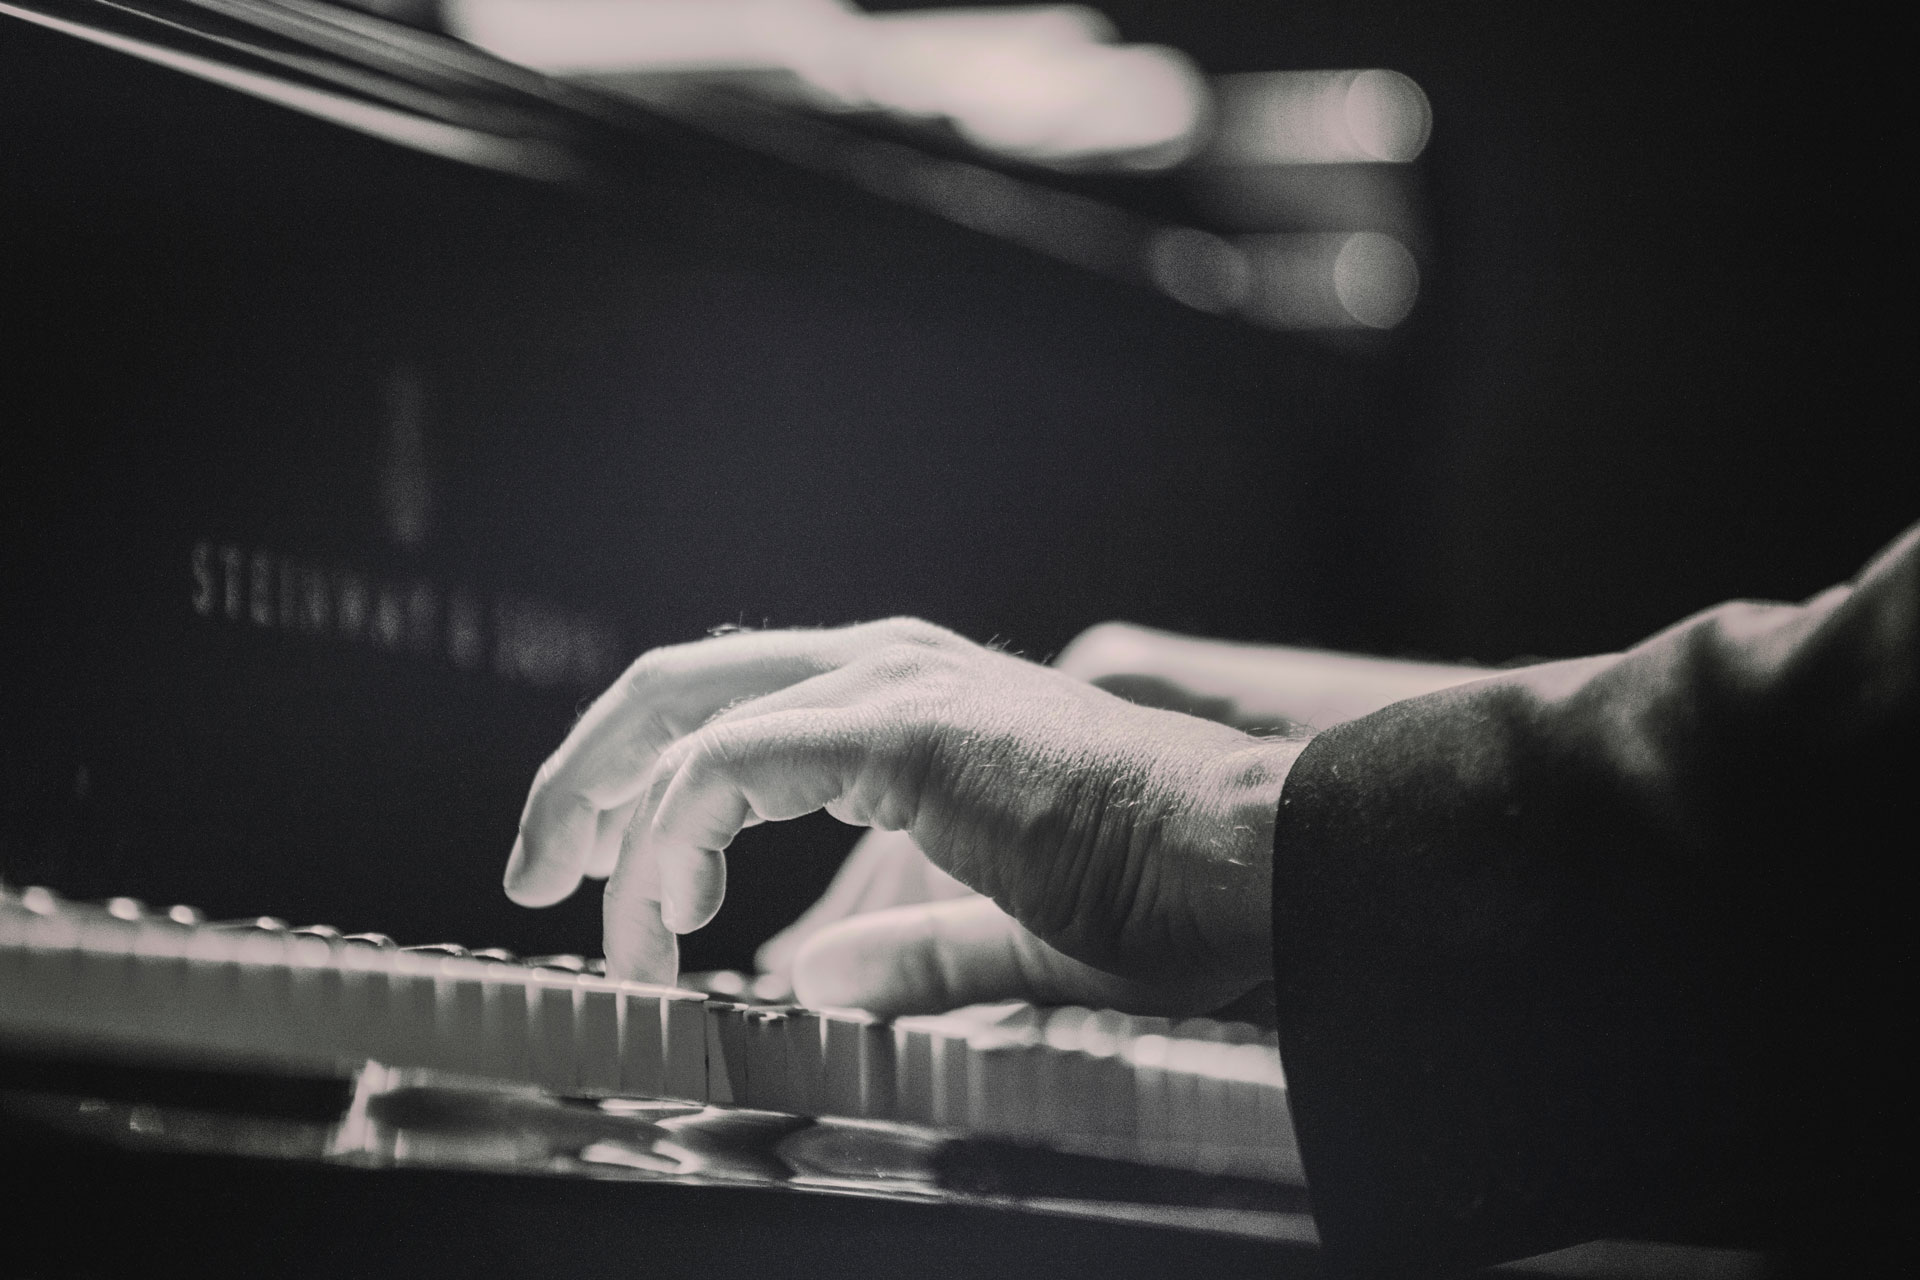 piano-ology-piano-technique-how-your-body-works-featured-photo-by-dolo-iglesias-on-unsplash